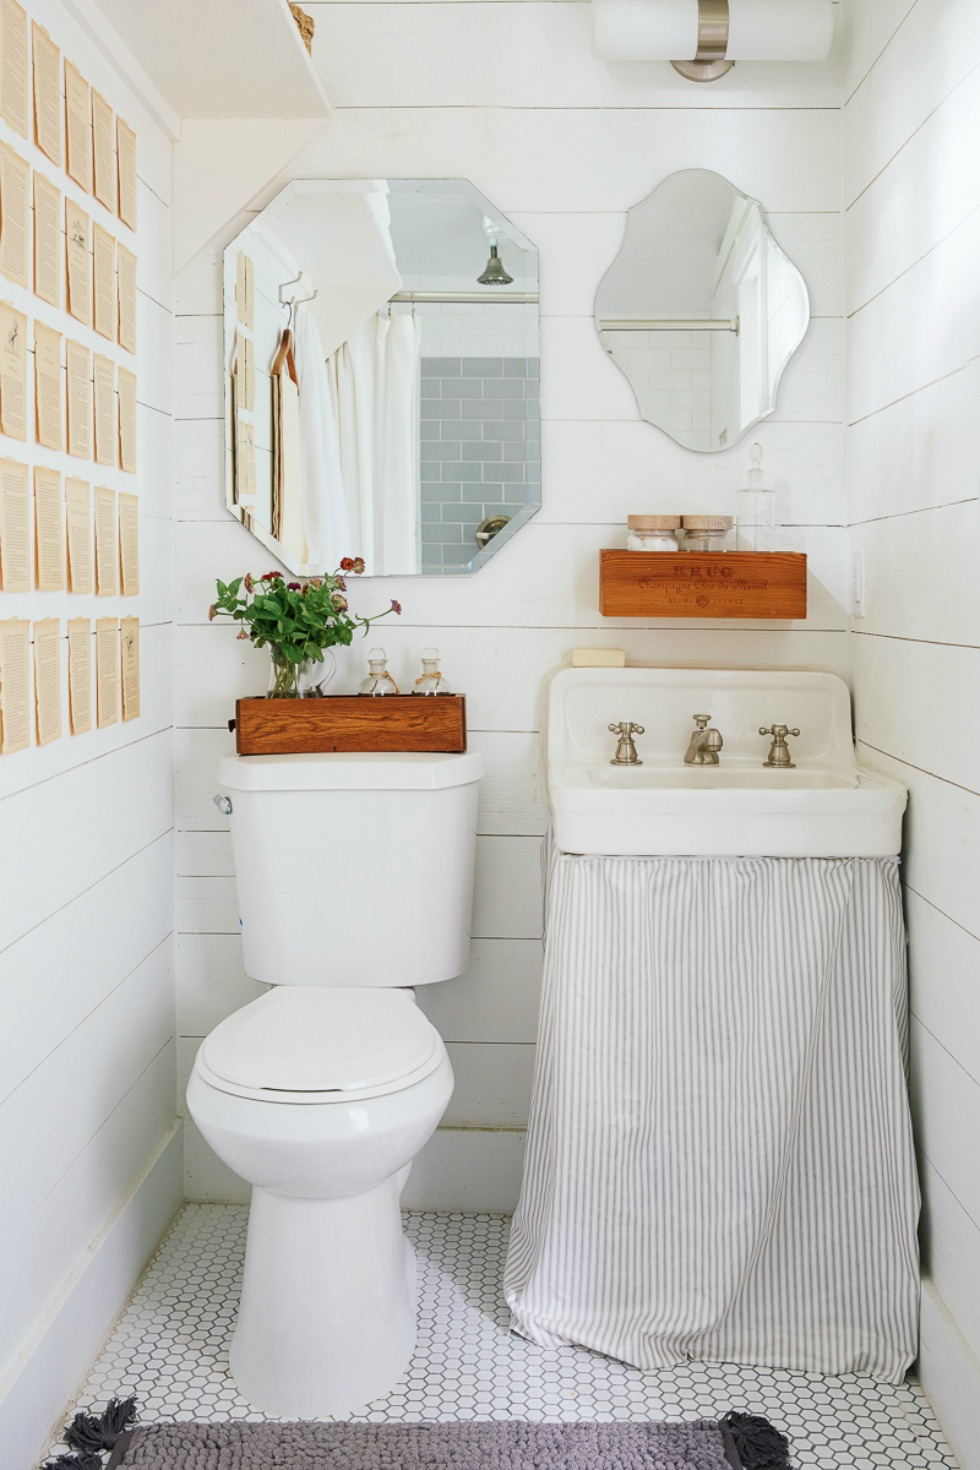 23 Bathroom Decorating Ideas of Bathroom Decor and Designs